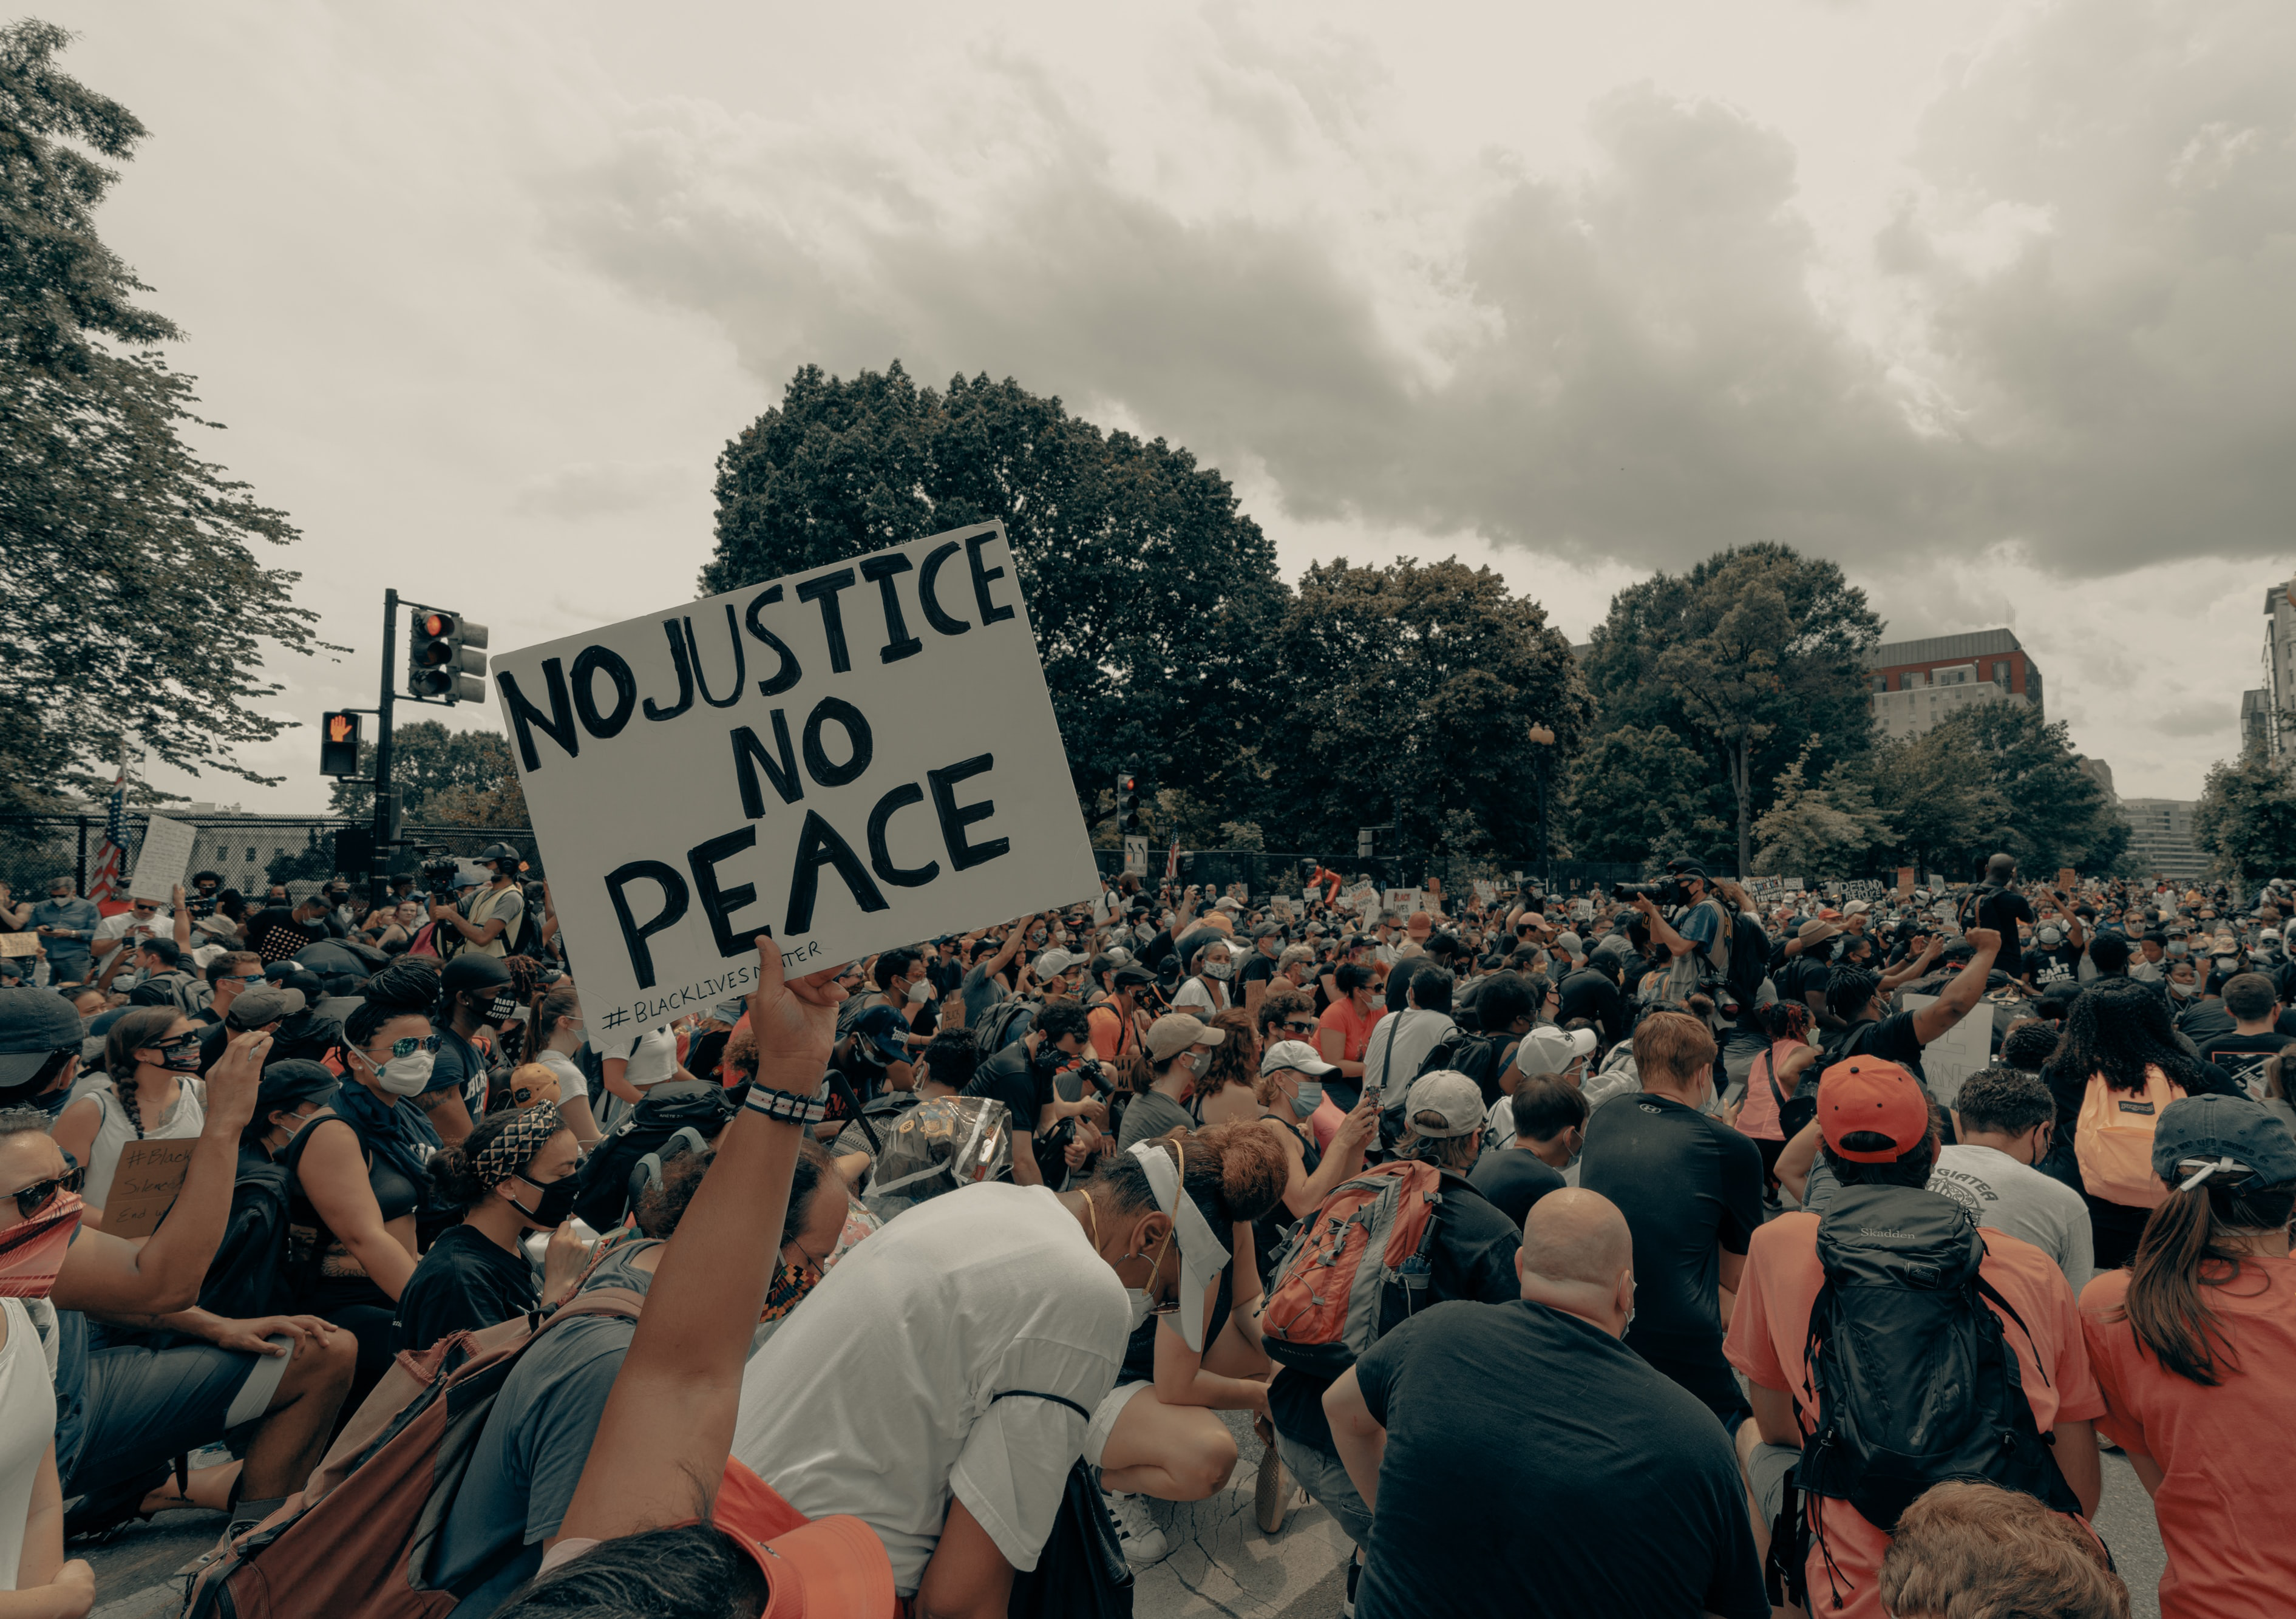 Photo by Clay Banks, Unsplash, group of people kneeling at protest